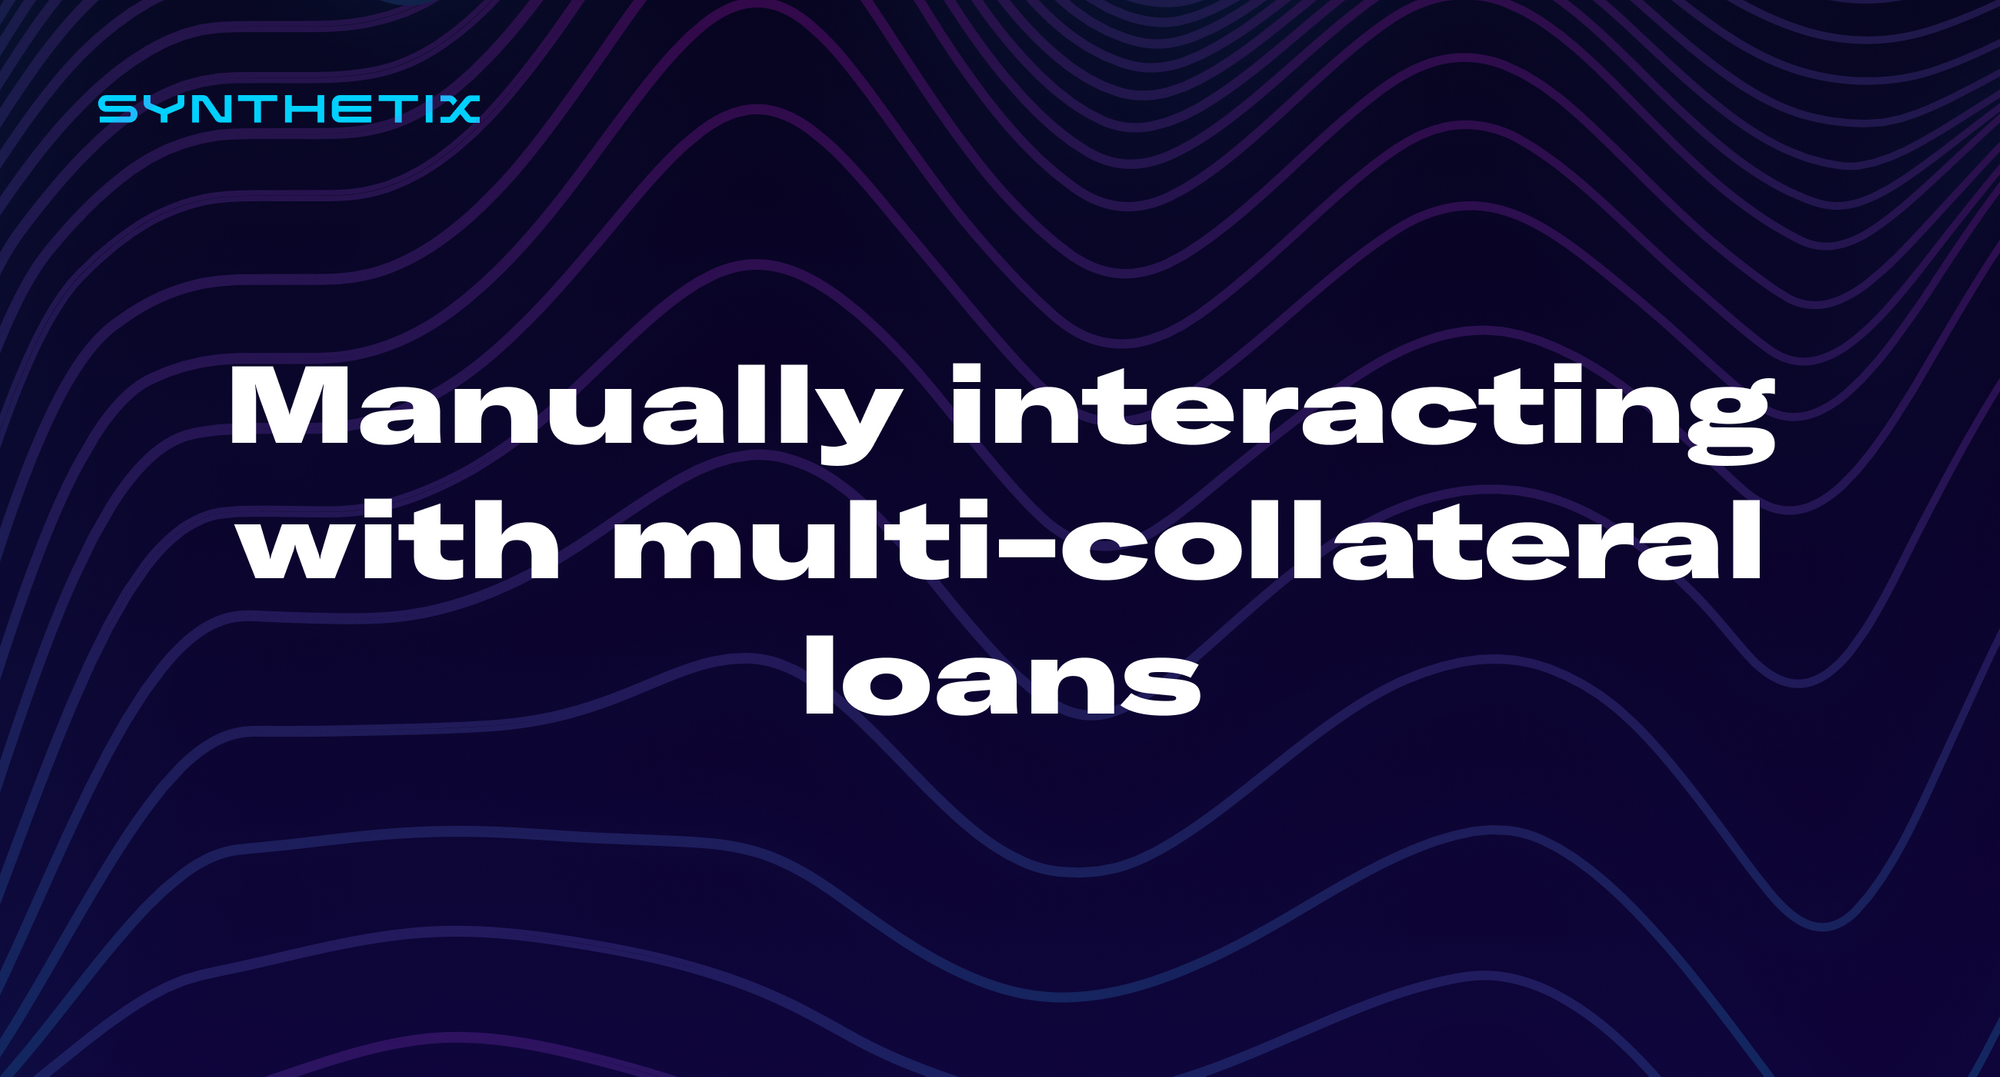 Manually interacting with multi-collateral loans